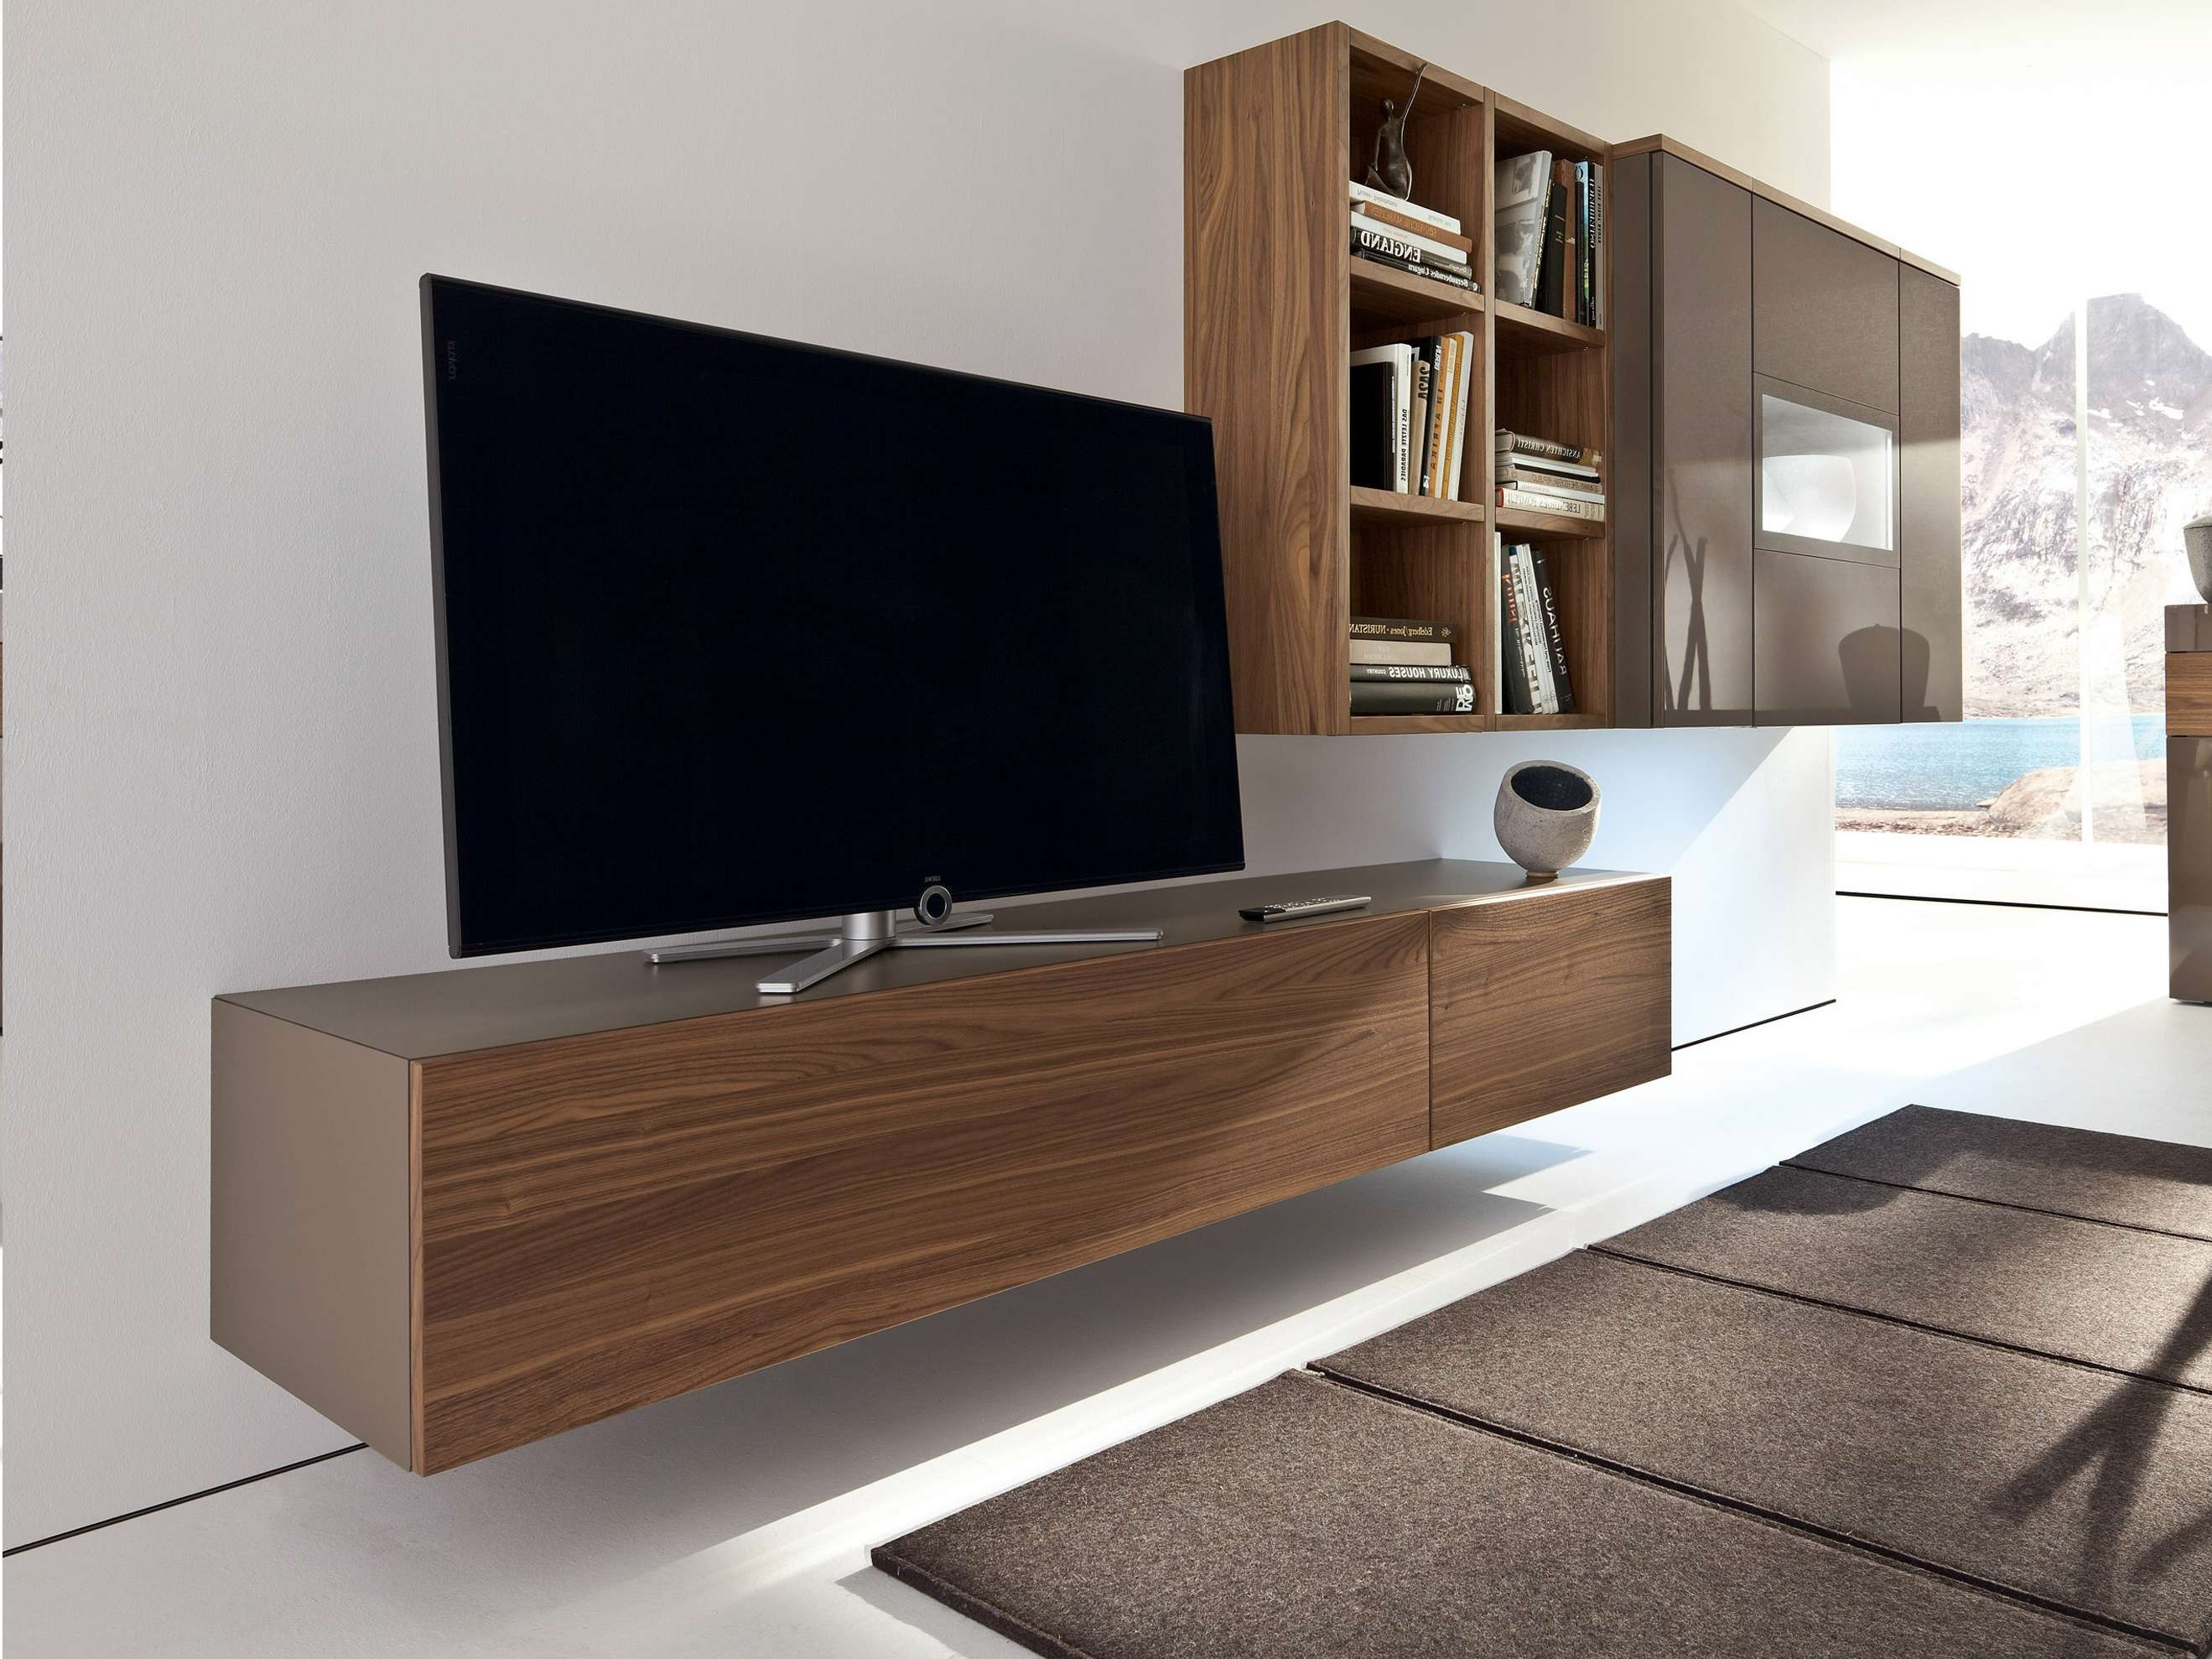 Bedroom : Tv Stand Unit Led Tv Table Wall Cabinets For Living Room Pertaining To Wall Mounted Tv Cabinets With Doors (View 1 of 20)